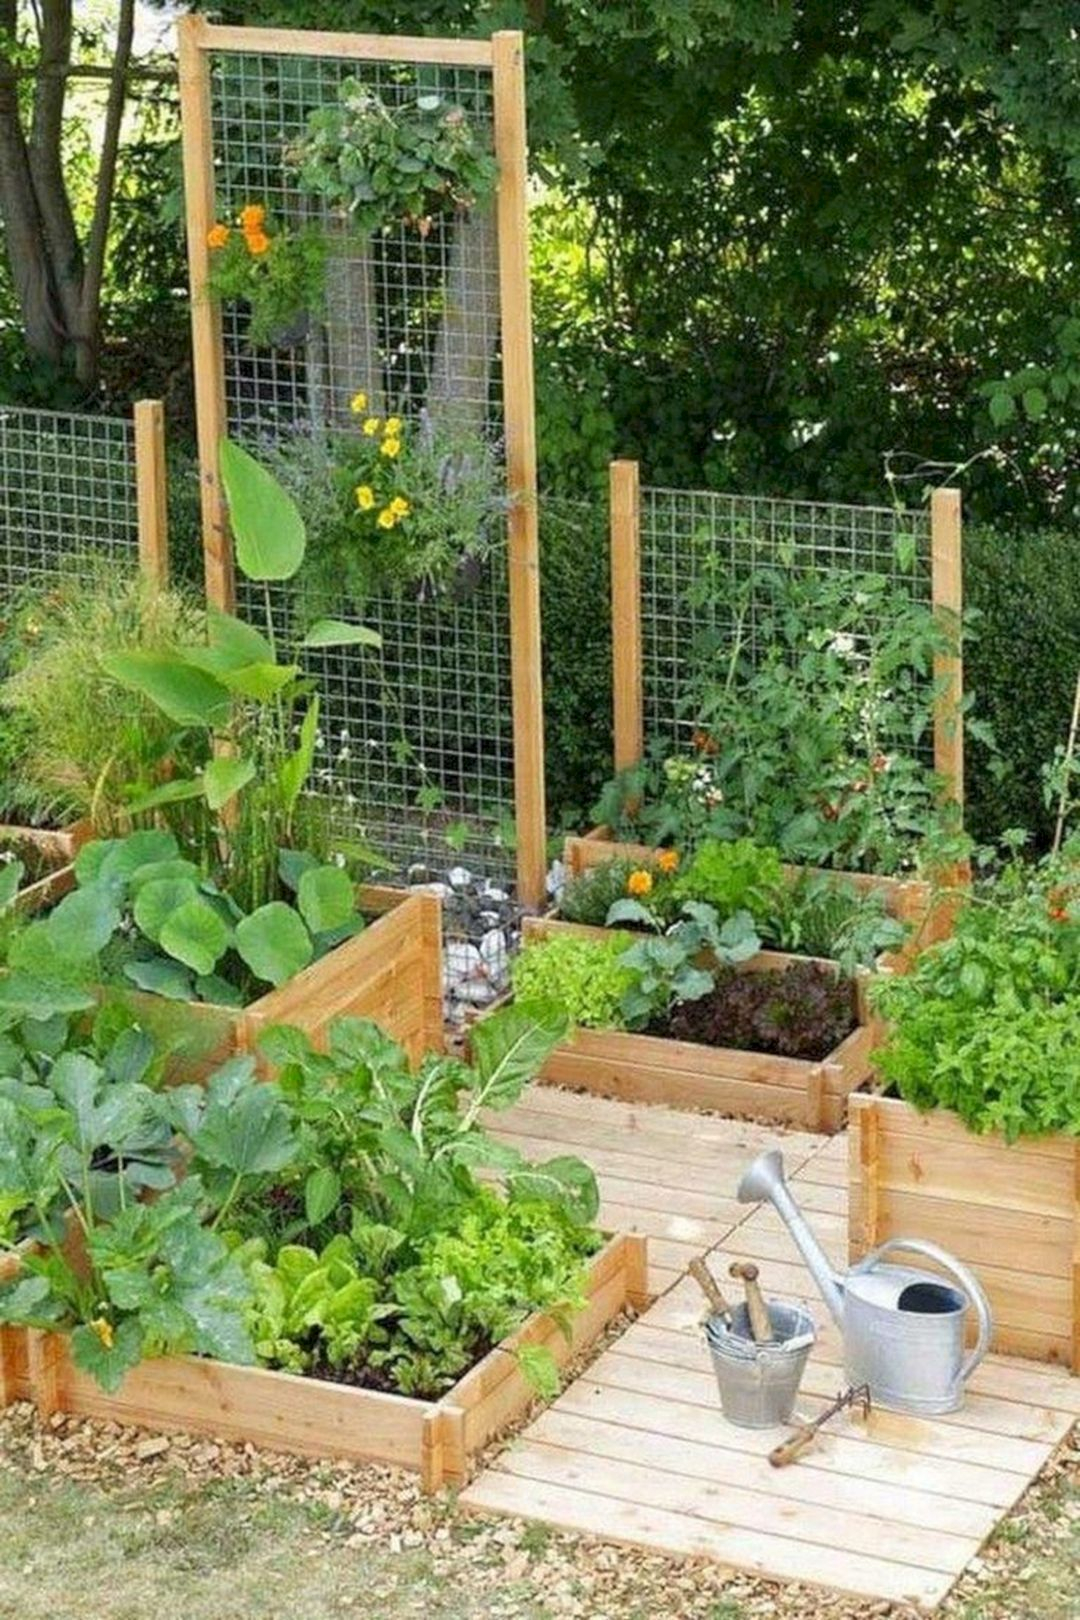 Brilliant Gardening Design Ideas You Need To Know In 202030